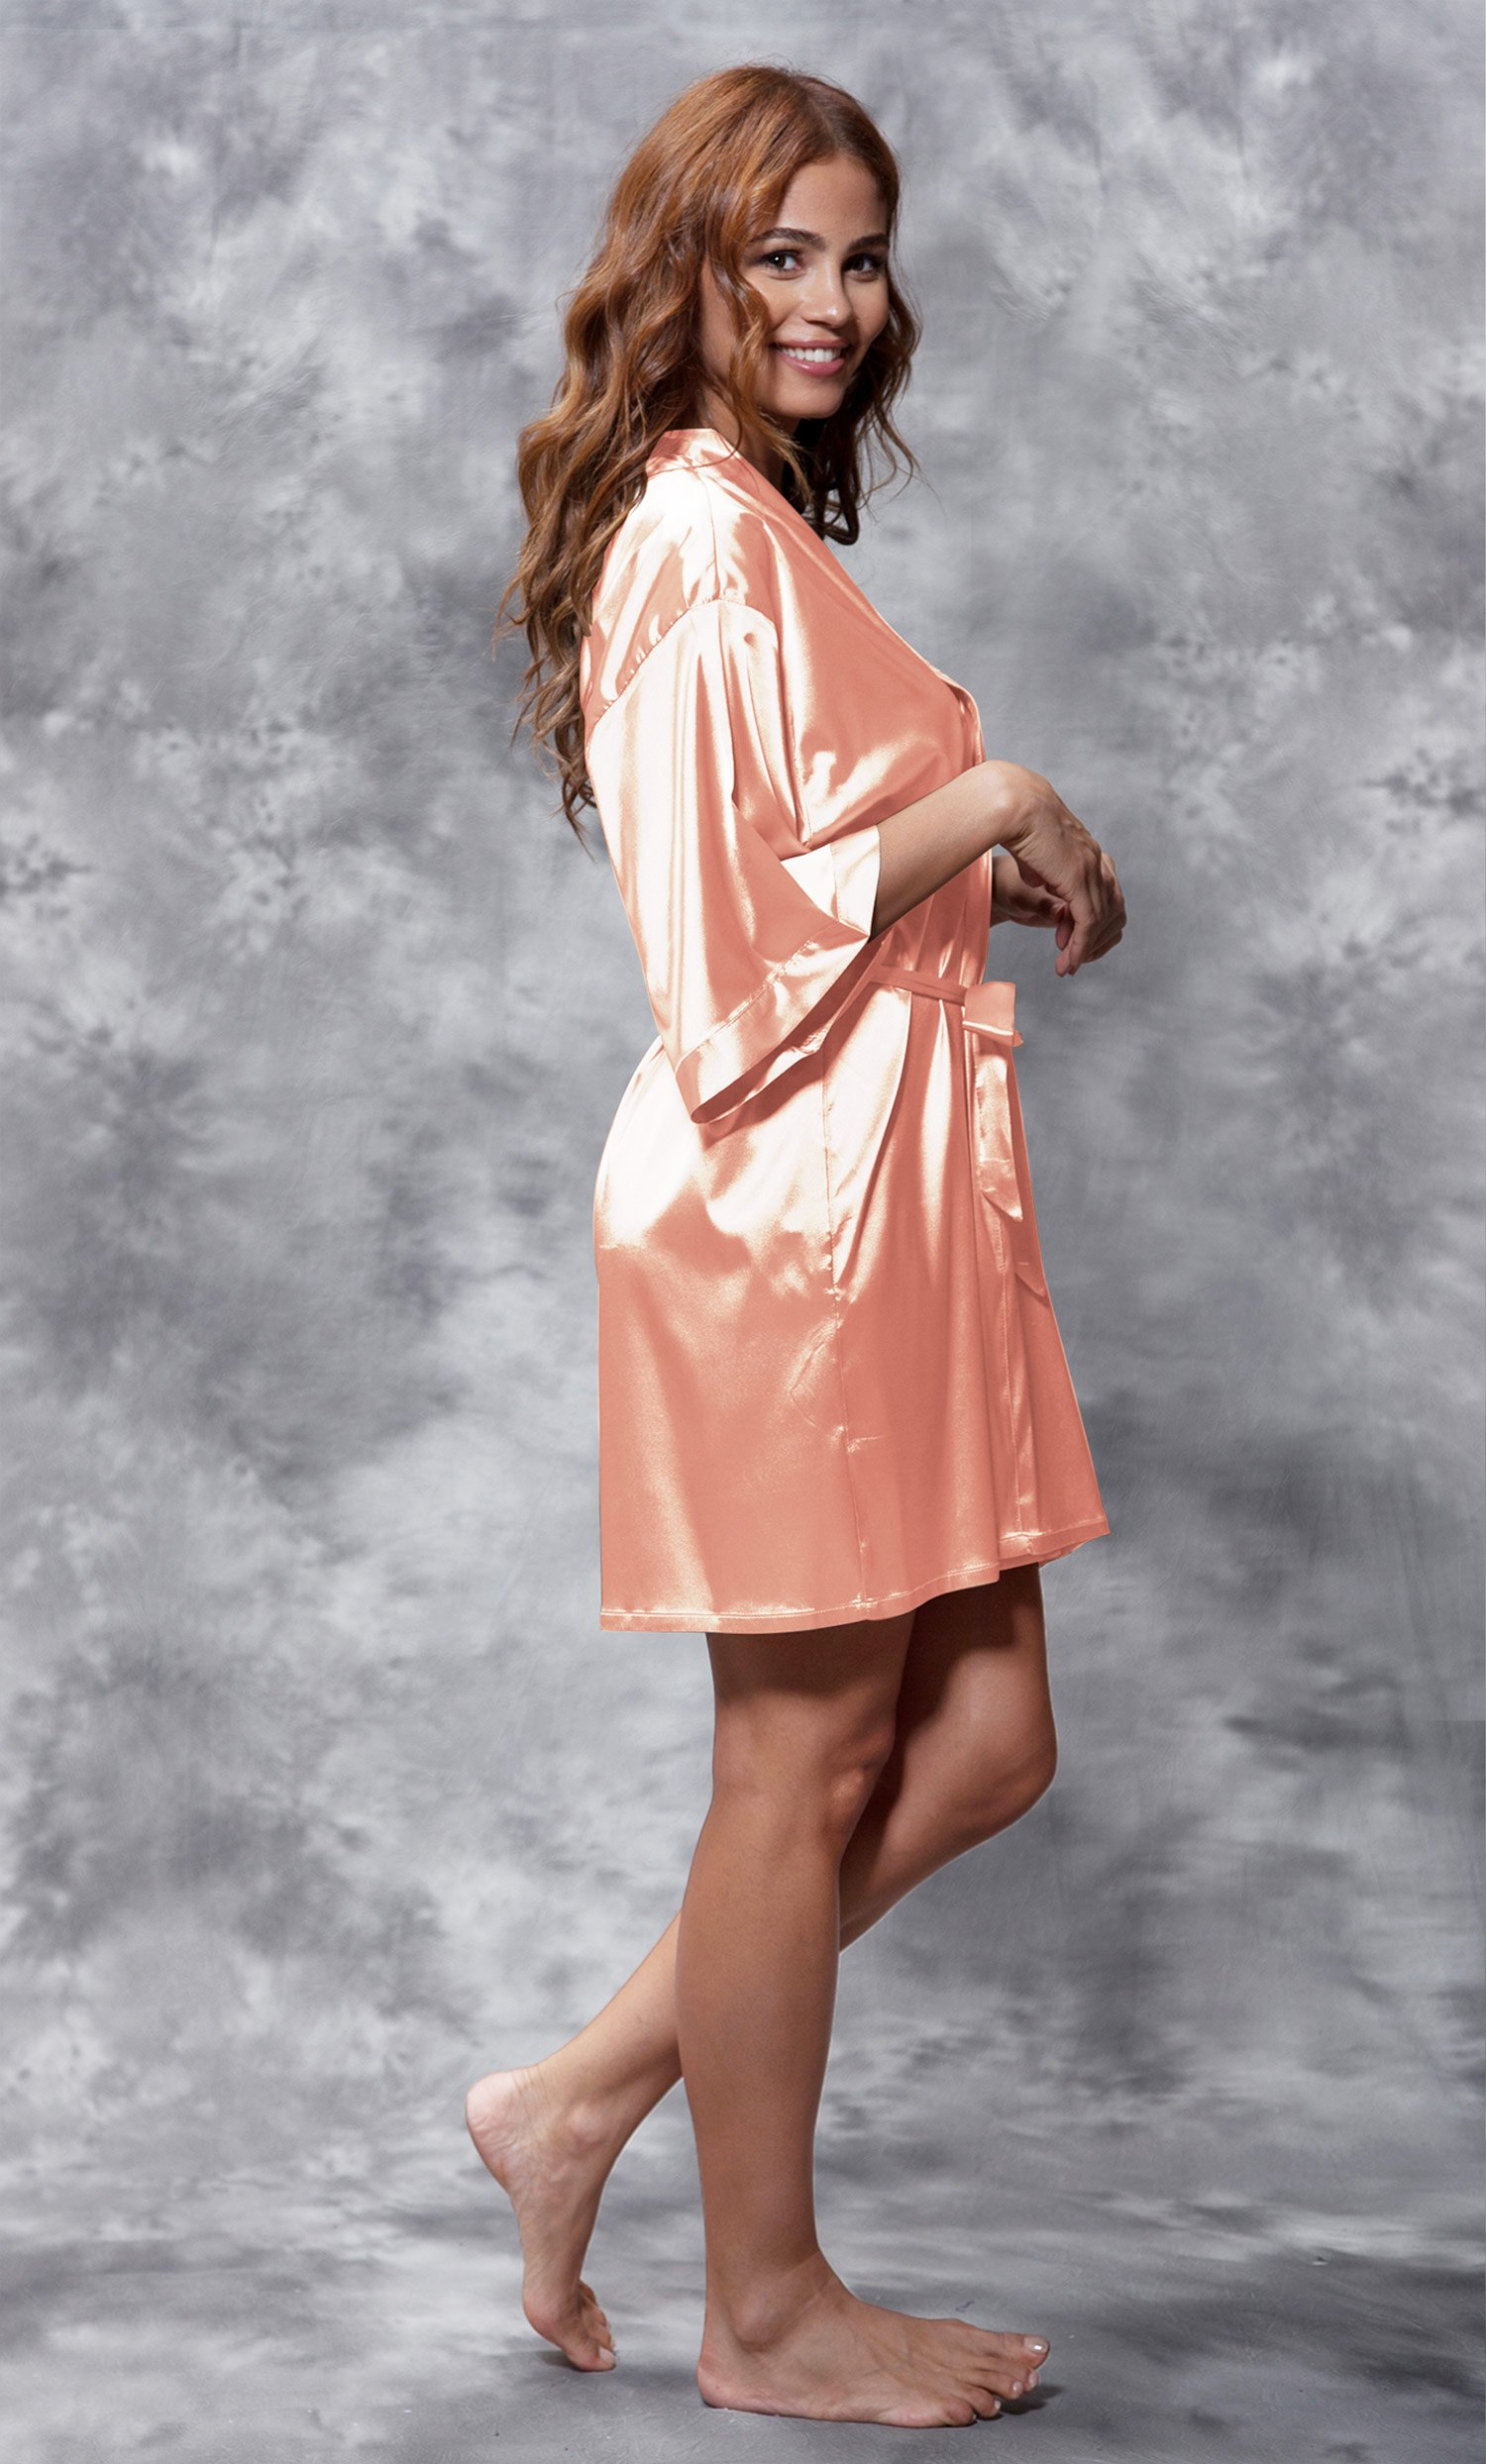 Bridesmaid Clear Rhinestone Satin Kimono Peach Short Robe-Robemart.com